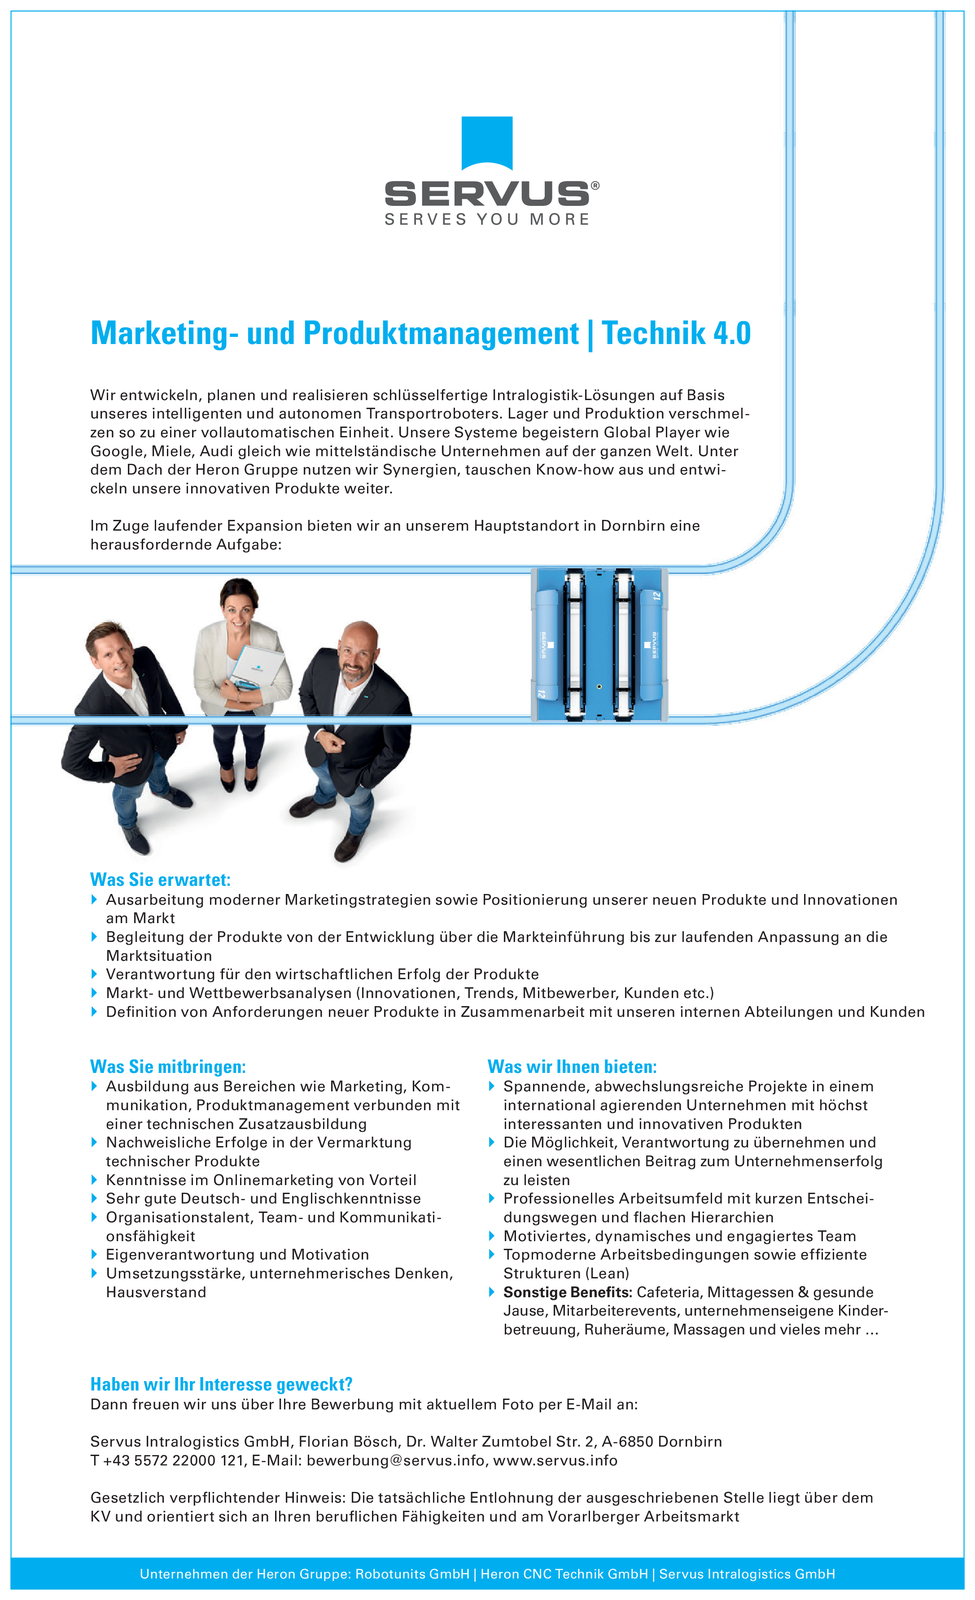 Marketing- und Produktmanagement | Technik 4.0